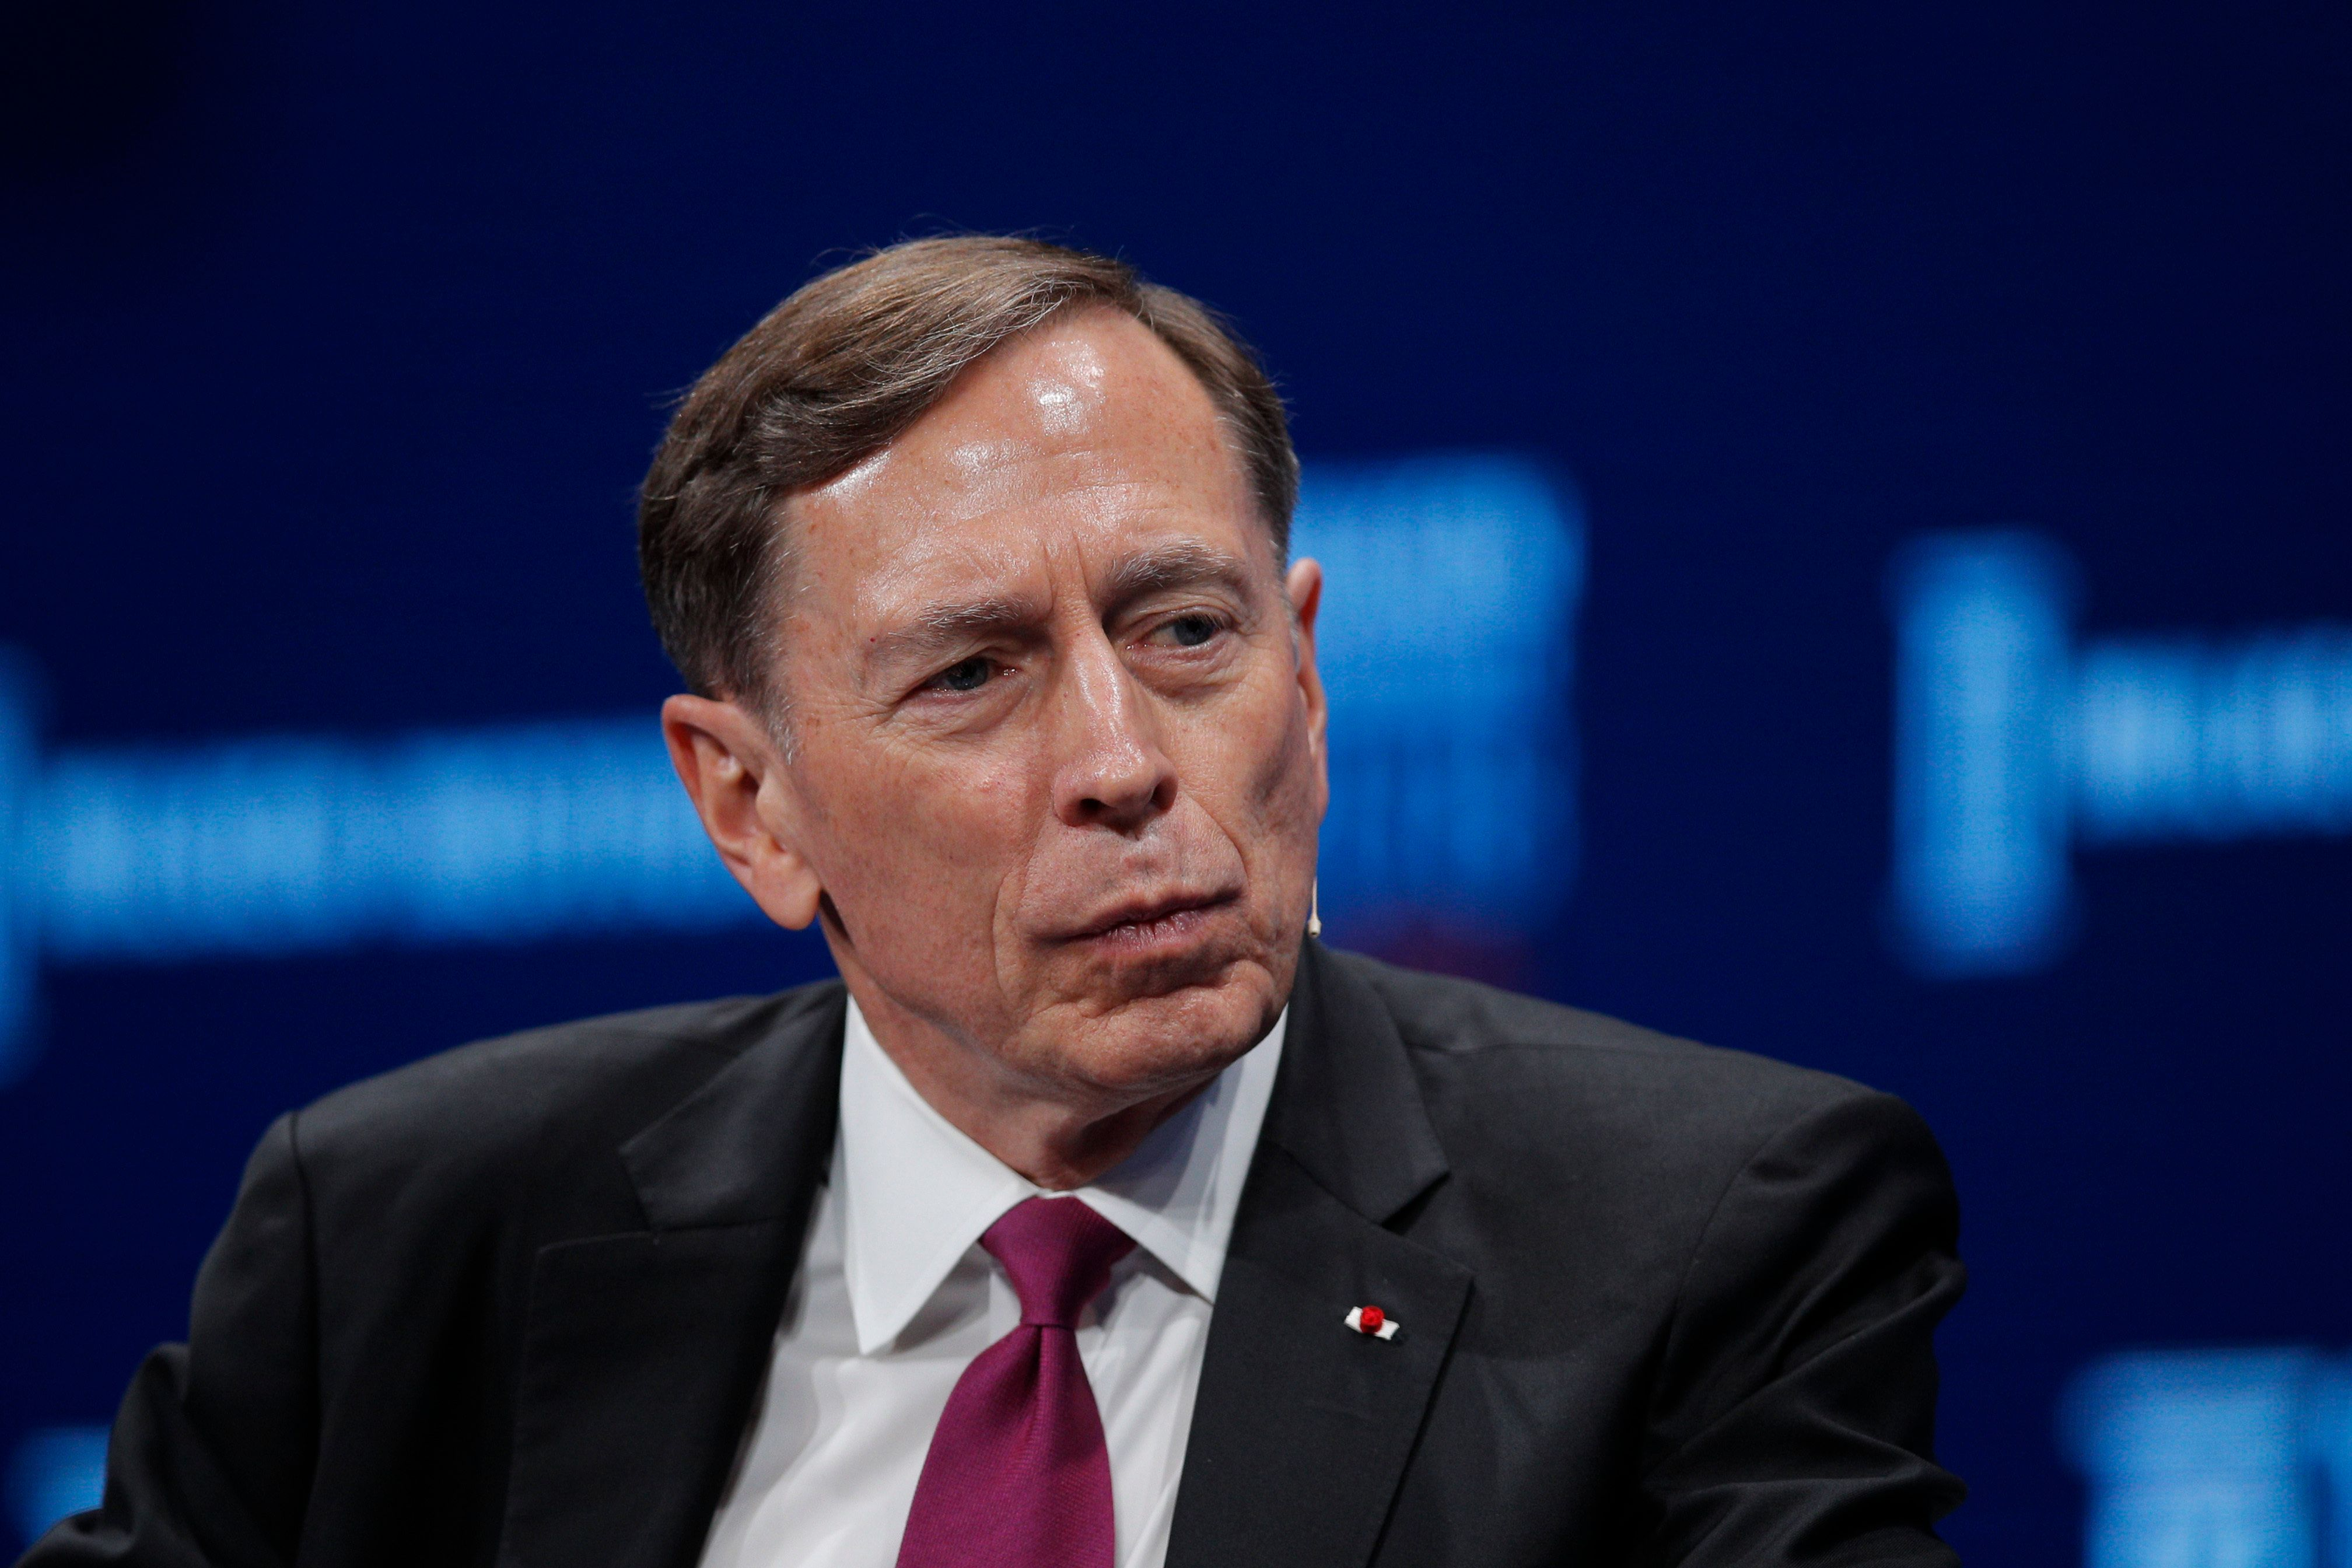 Retired Gen. David Petraeus at the Milken Institute Global Conference in Beverly Hills, California, in April. In an interview